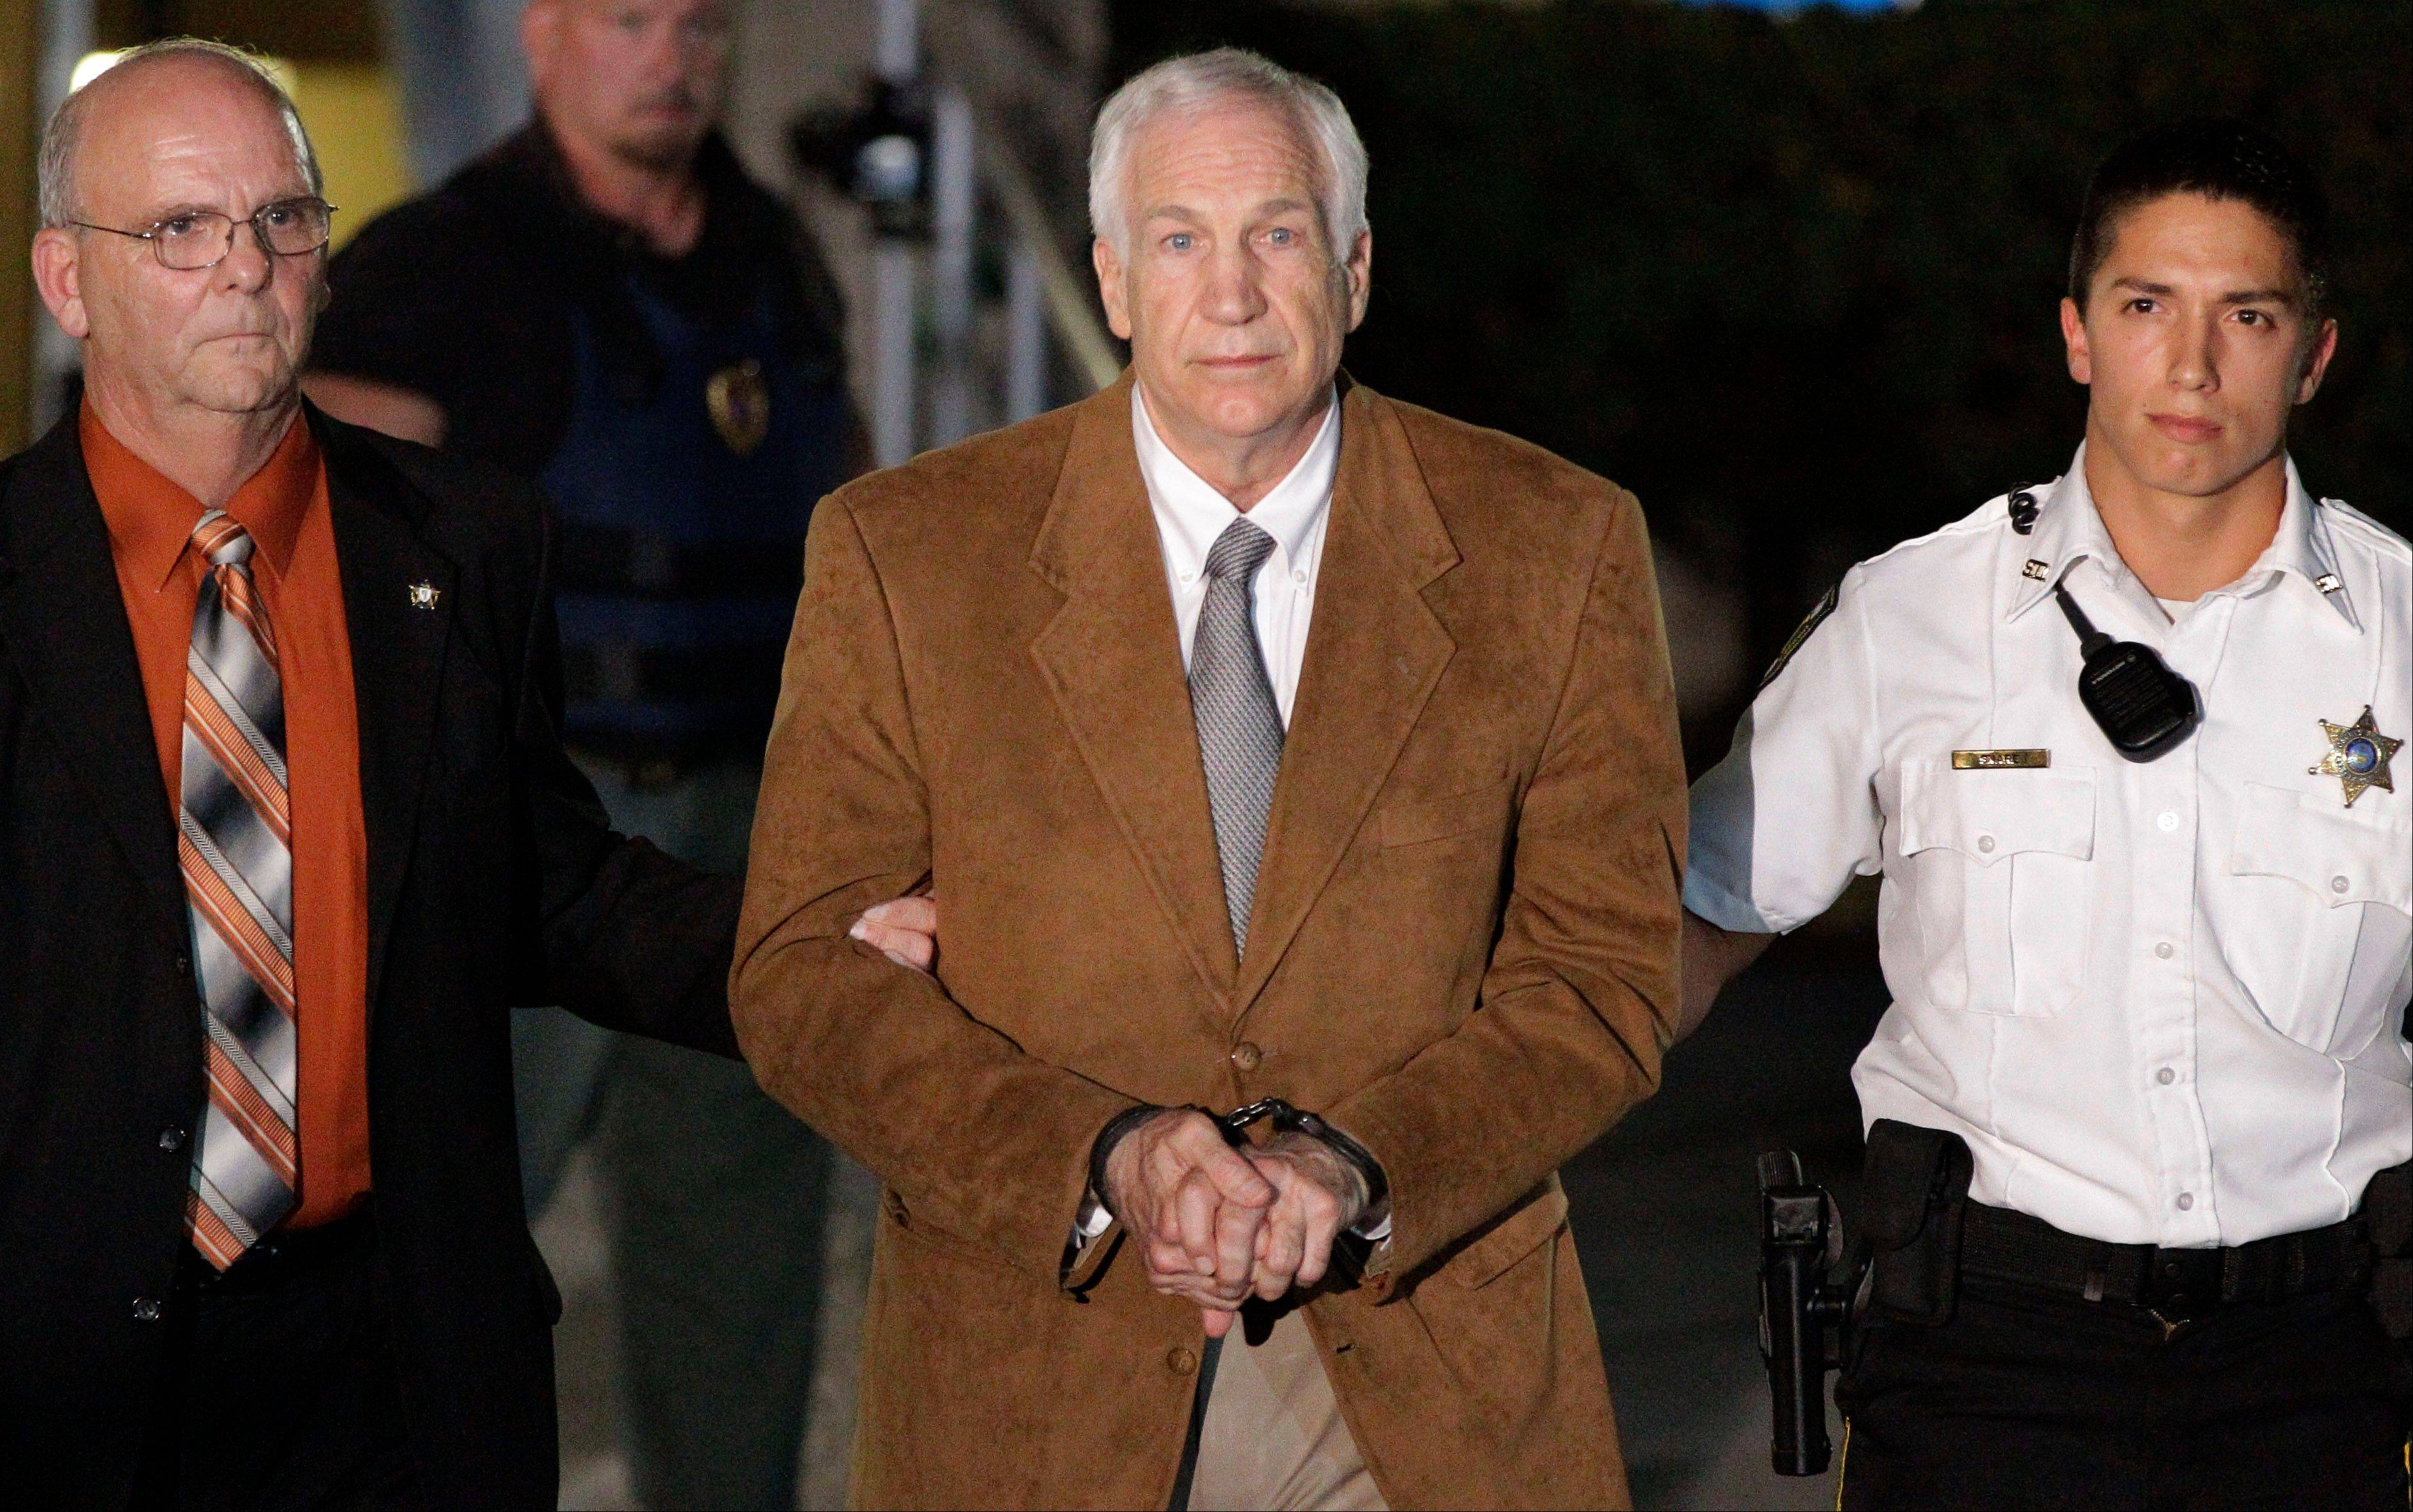 Former Penn State University assistant football coach Jerry Sandusky, center, leaves the Centre County courthouse in custody after being found guilty of multiple charges of child sexual abuse in June in Bellefonte, Pa. He'll be sentenced Oct. 9.